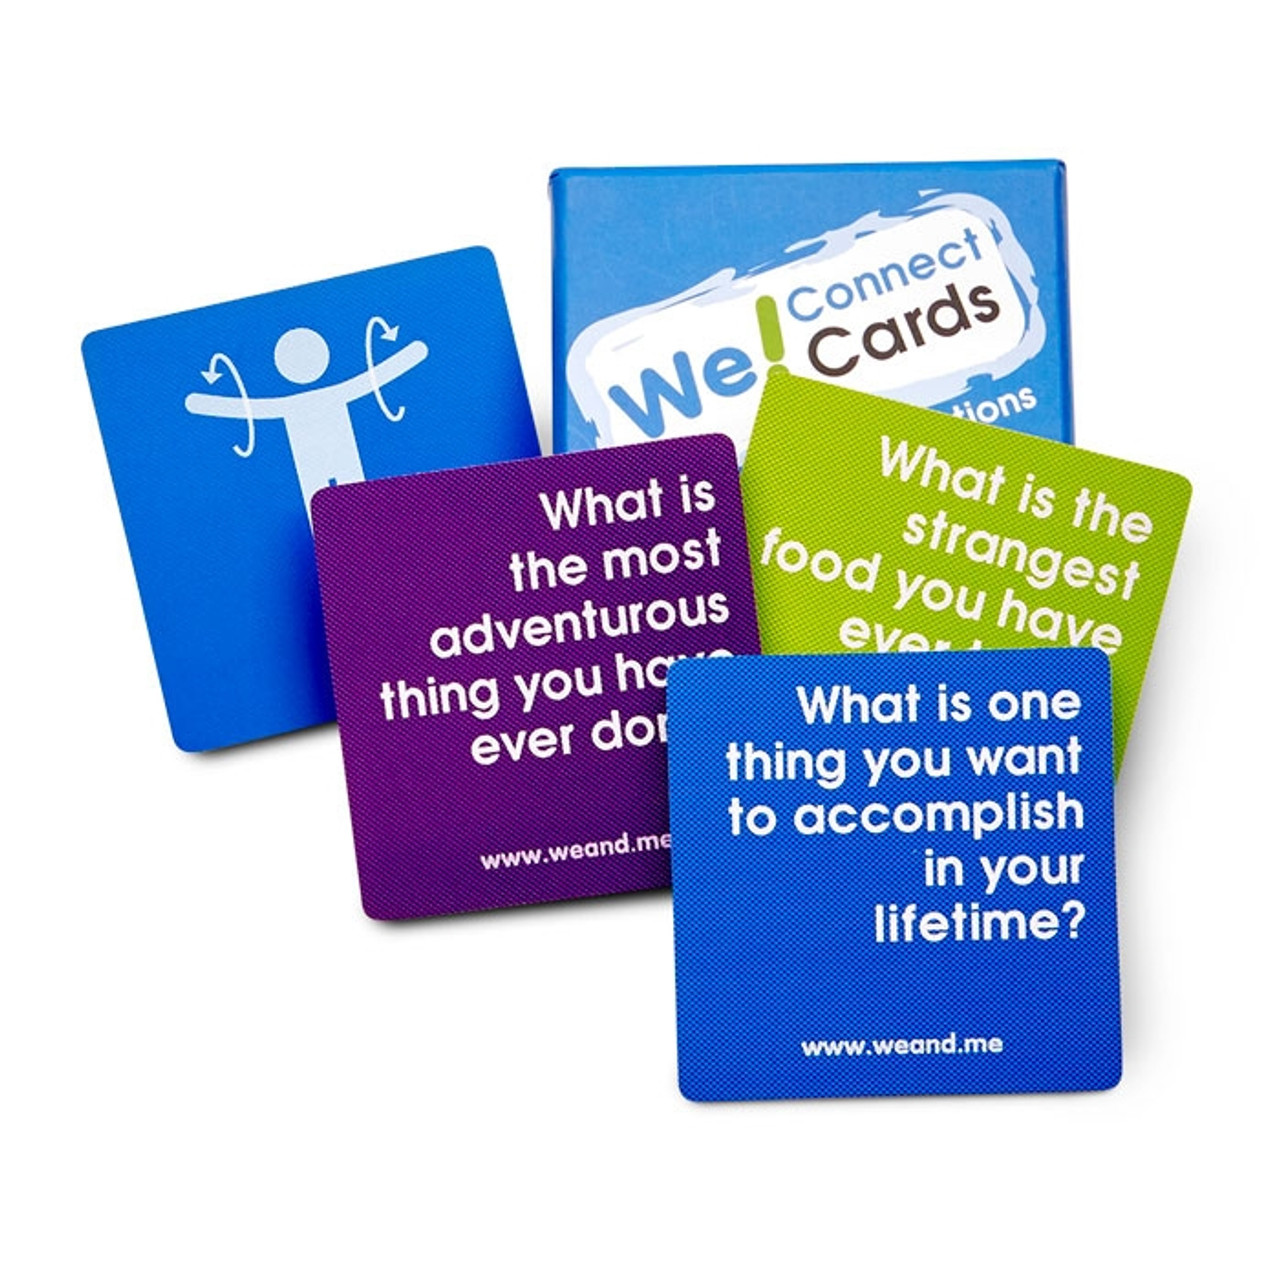 We Connect Cards; sample cards